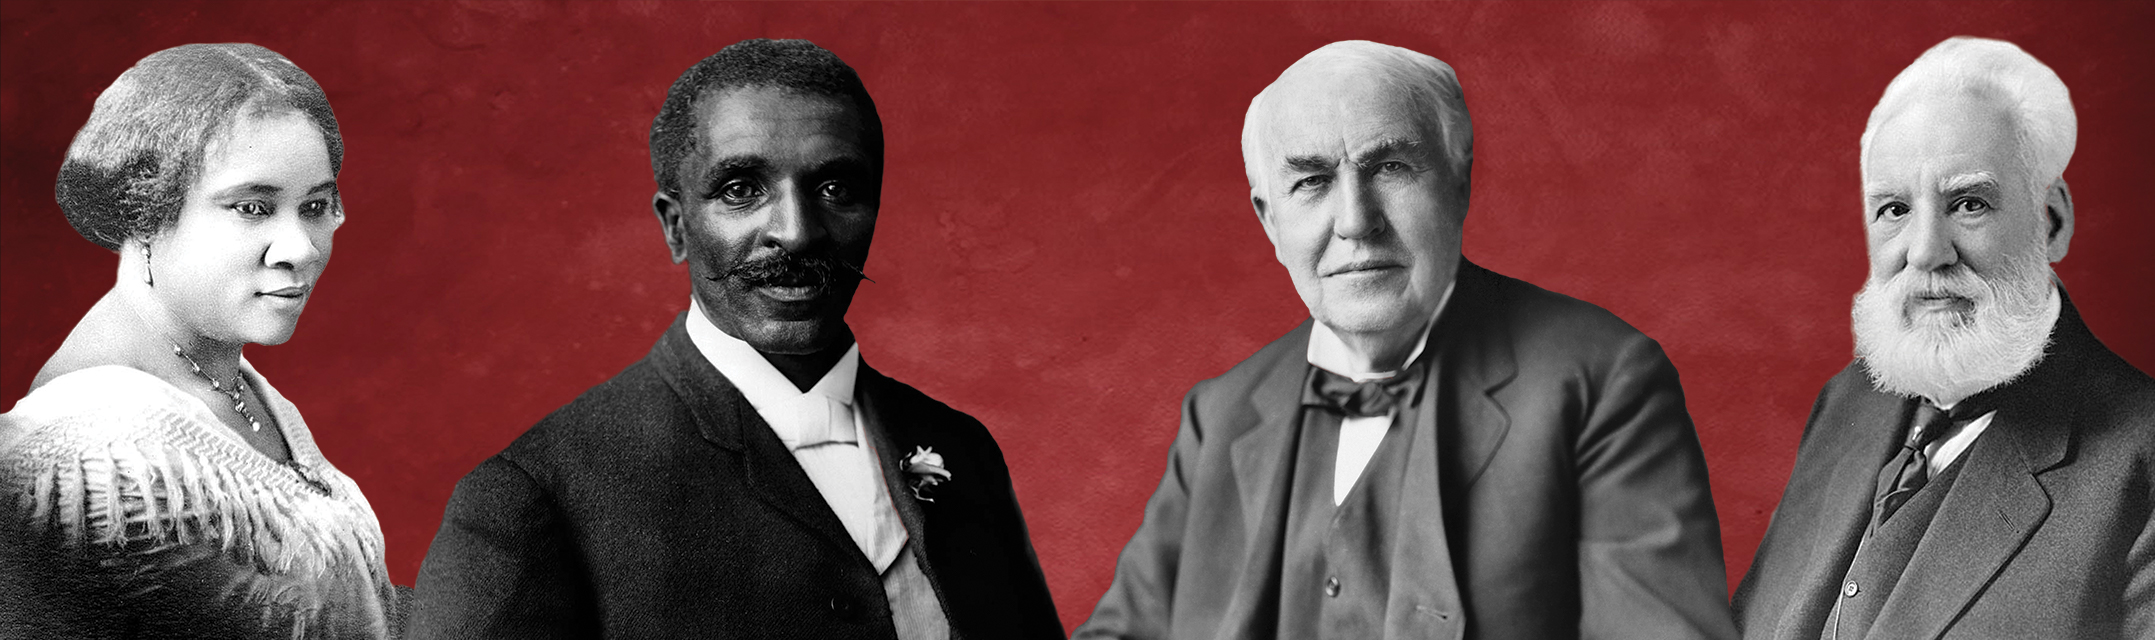 Chautauqua banner featuring images, left to right, of Madame C.J. Walker, George Washington Carver, Thomas Edison and Alexander Graham Bell